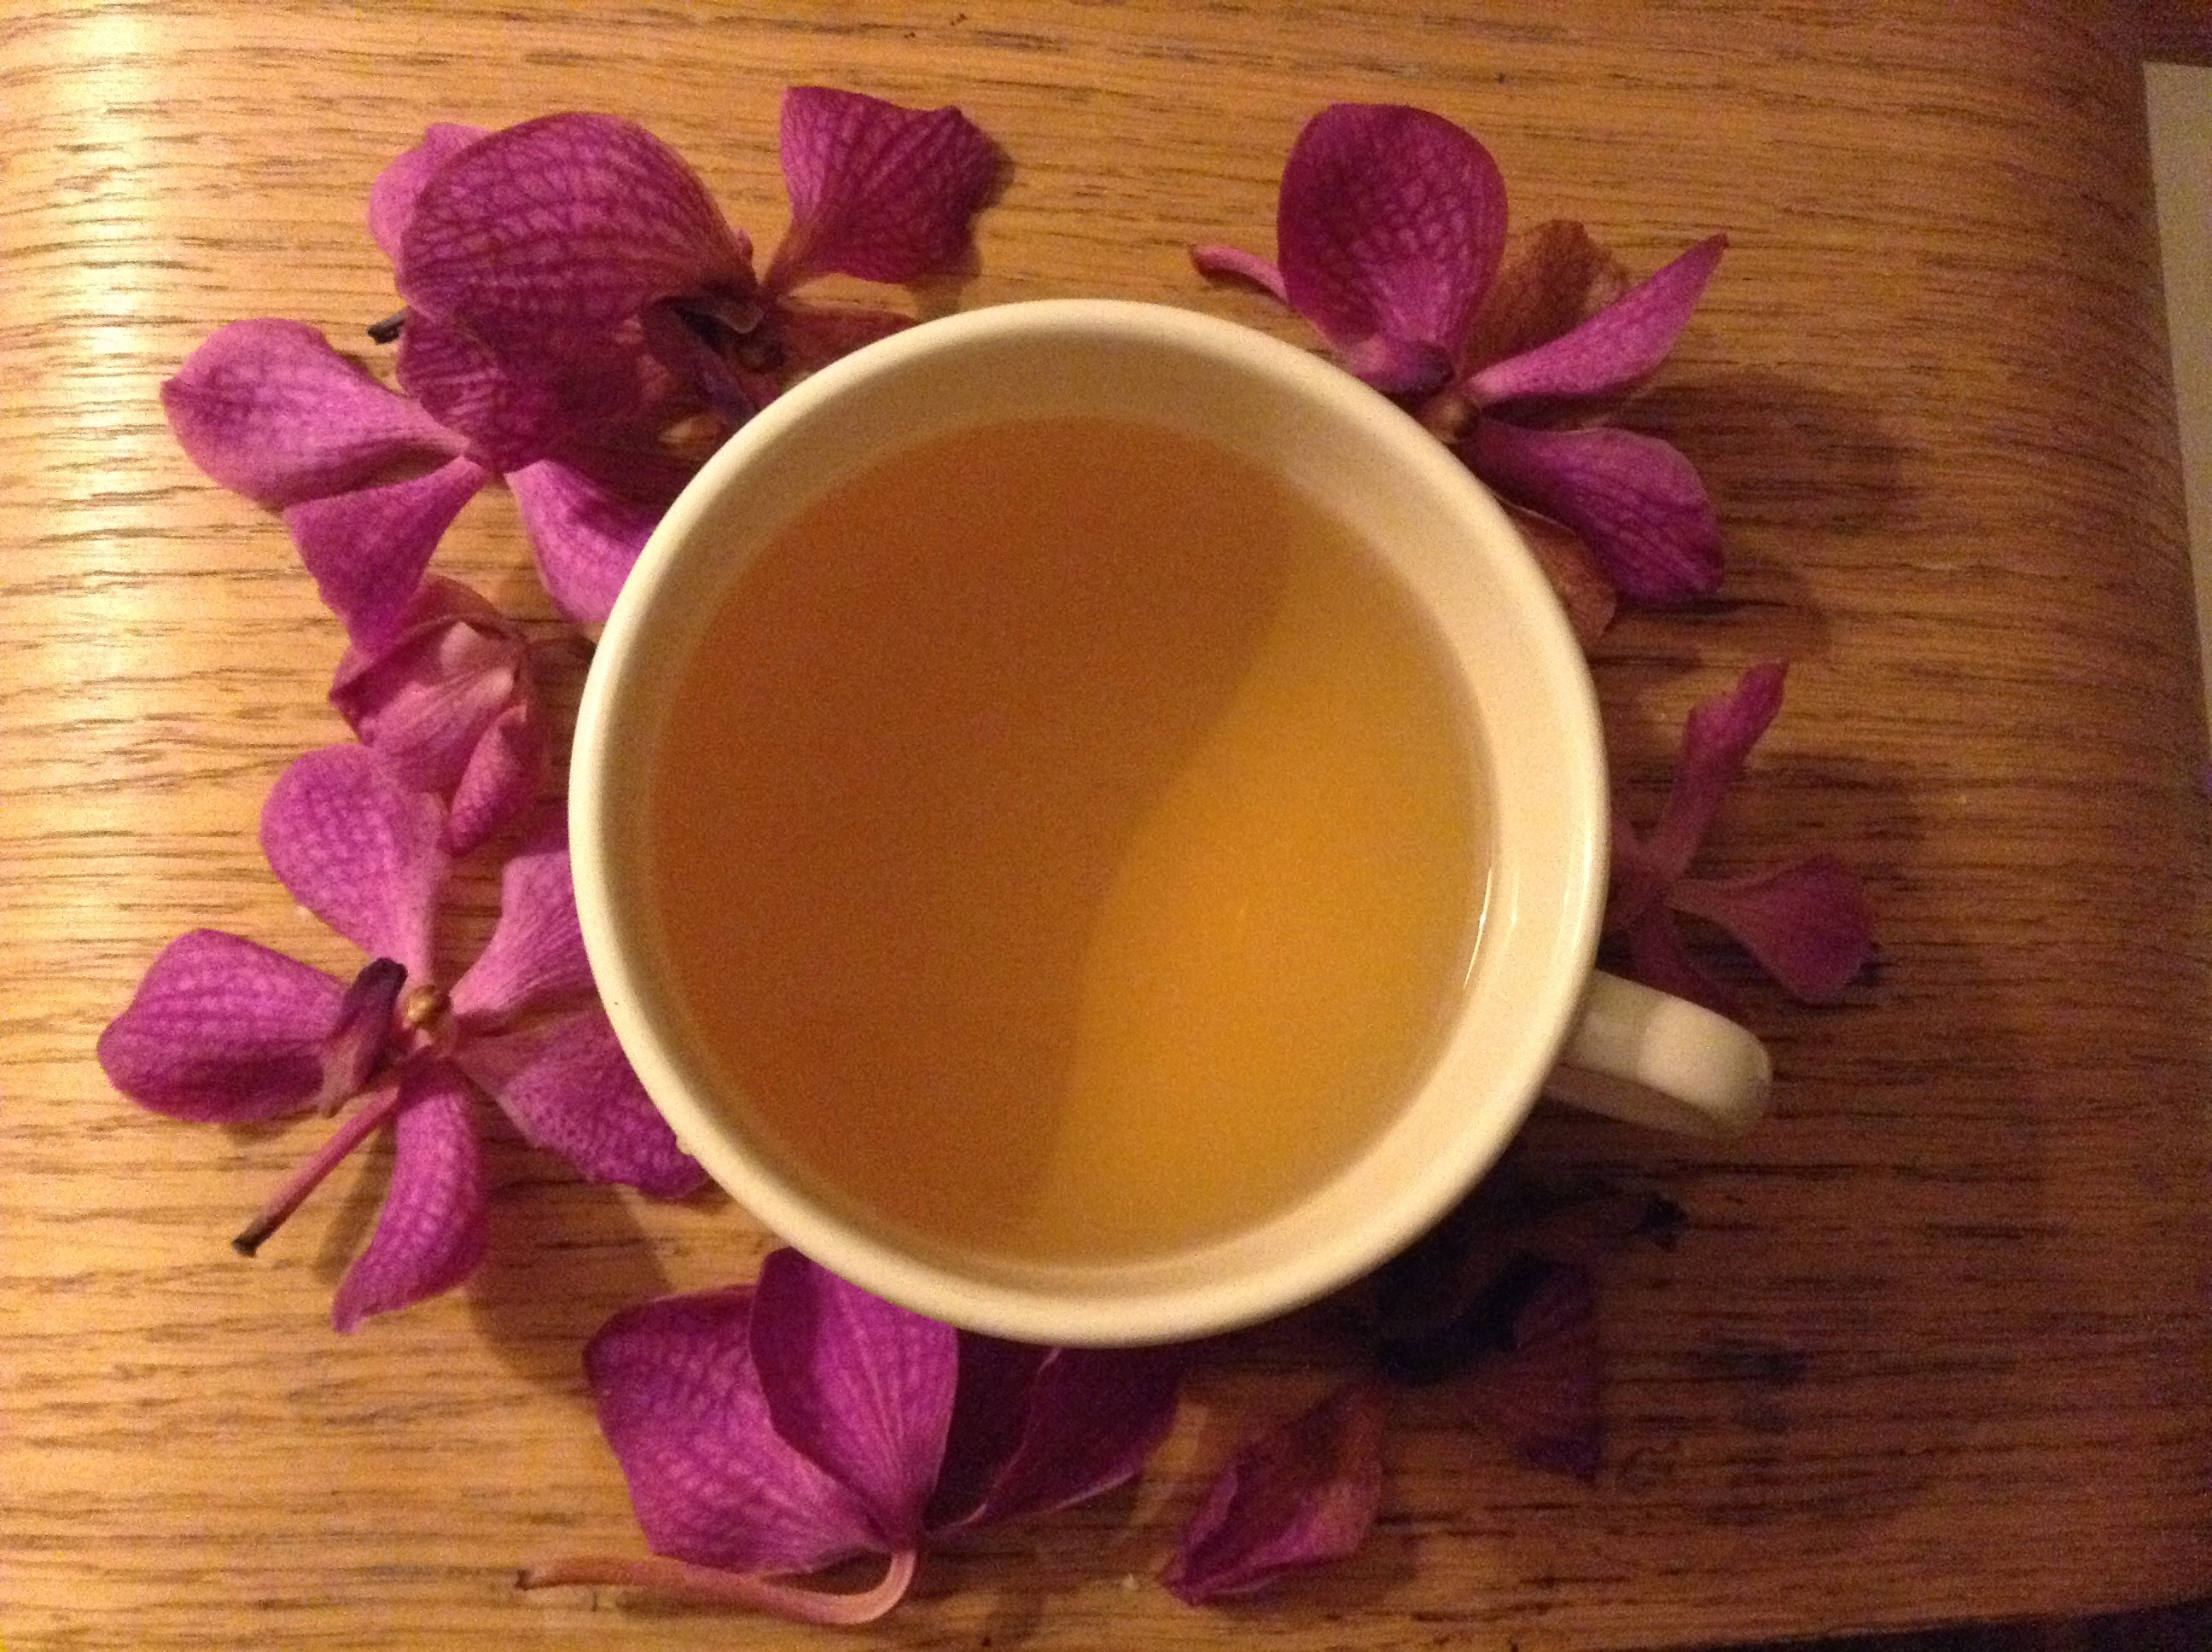 Green chai tea and orchids